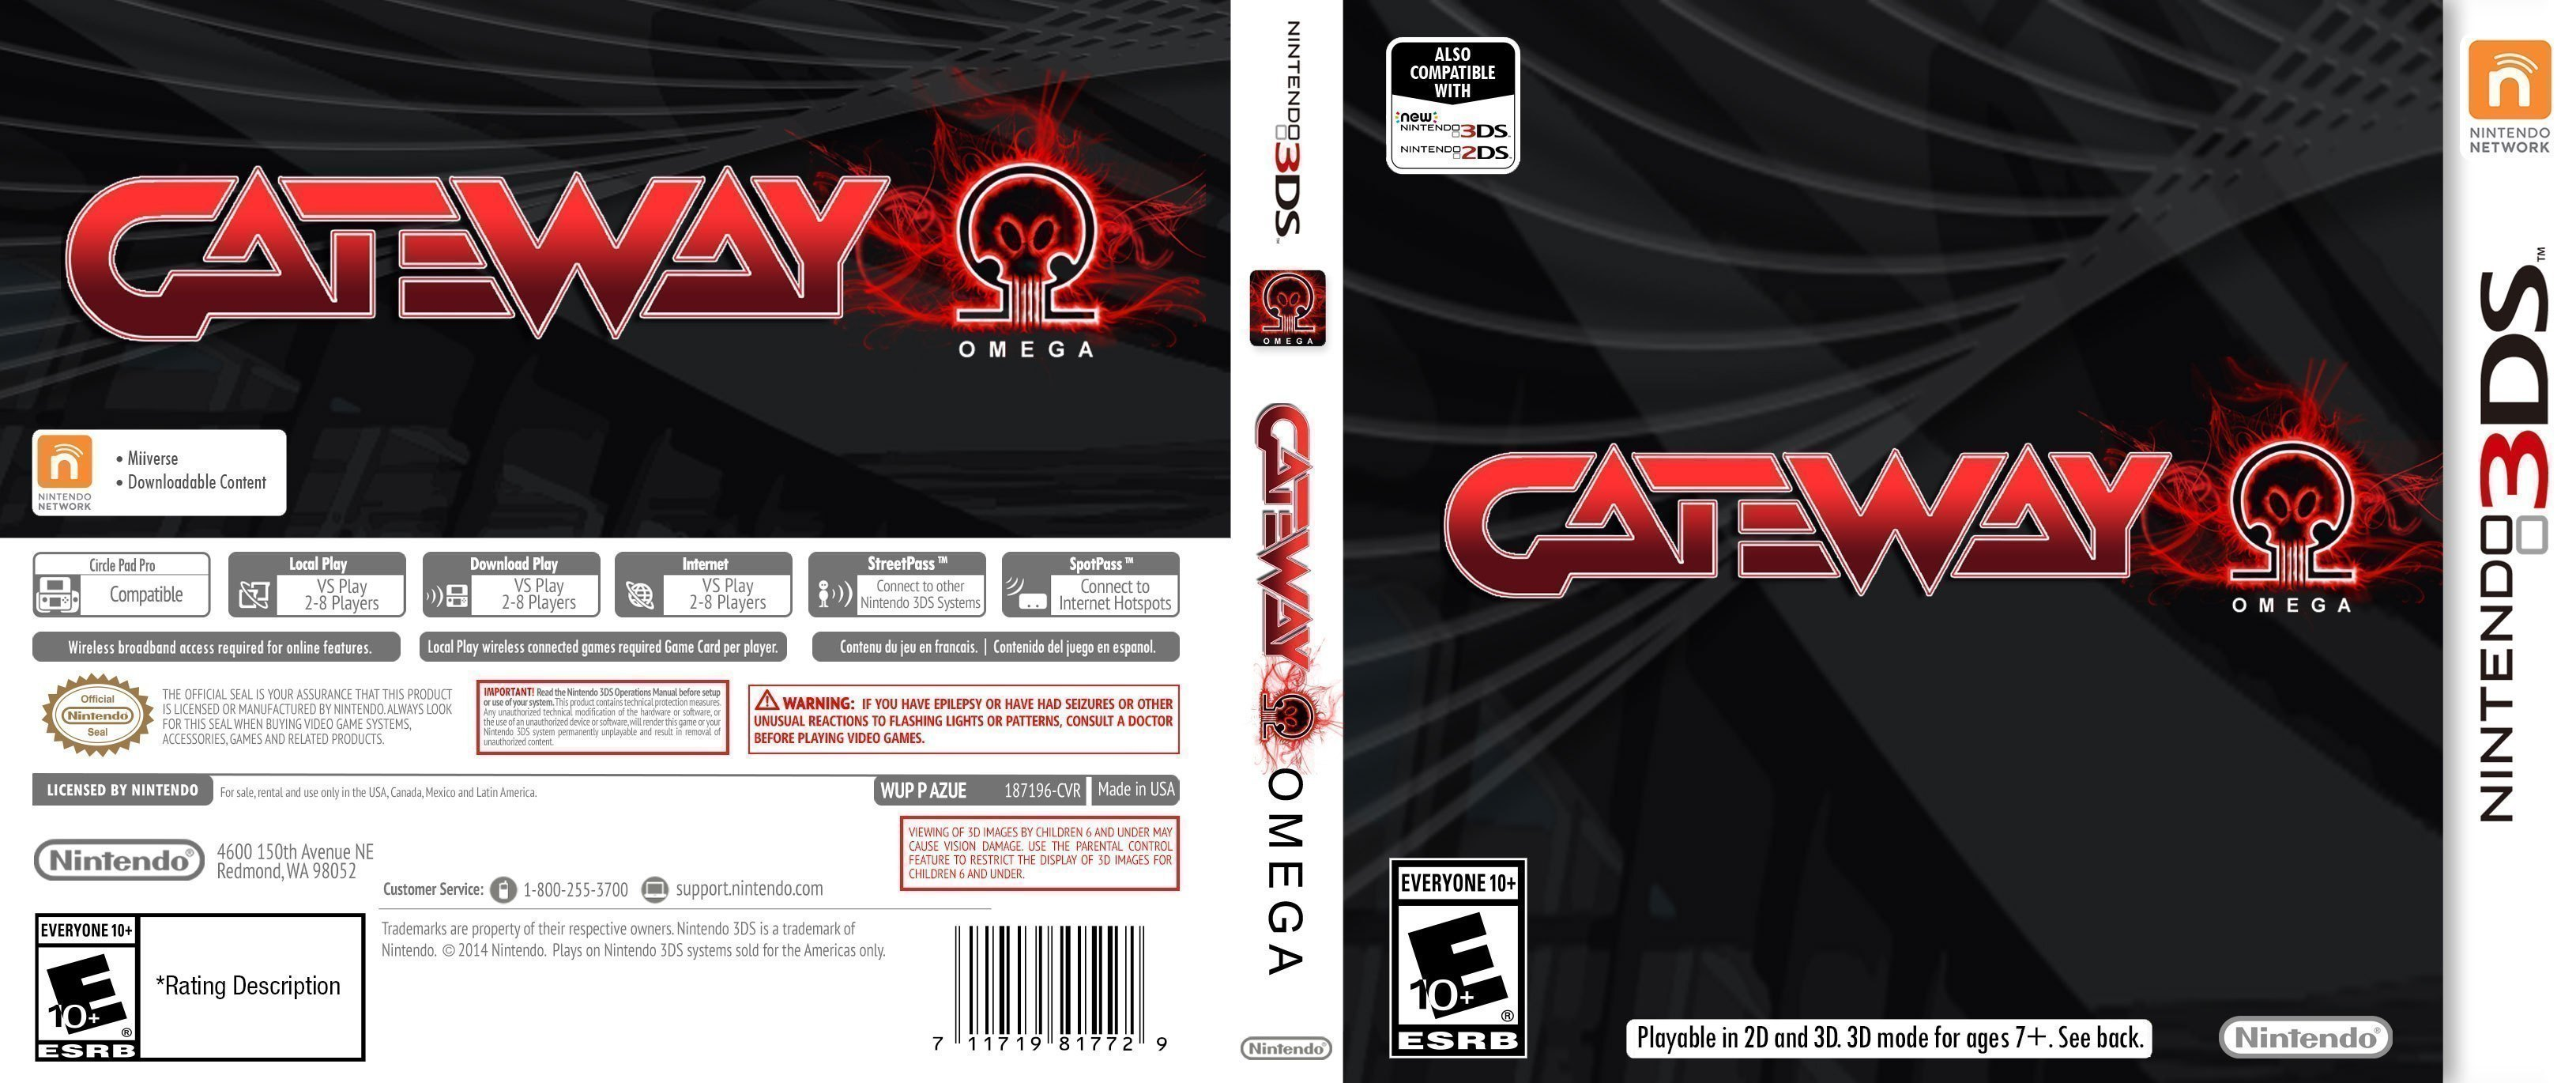 how to put games on gateway 3ds